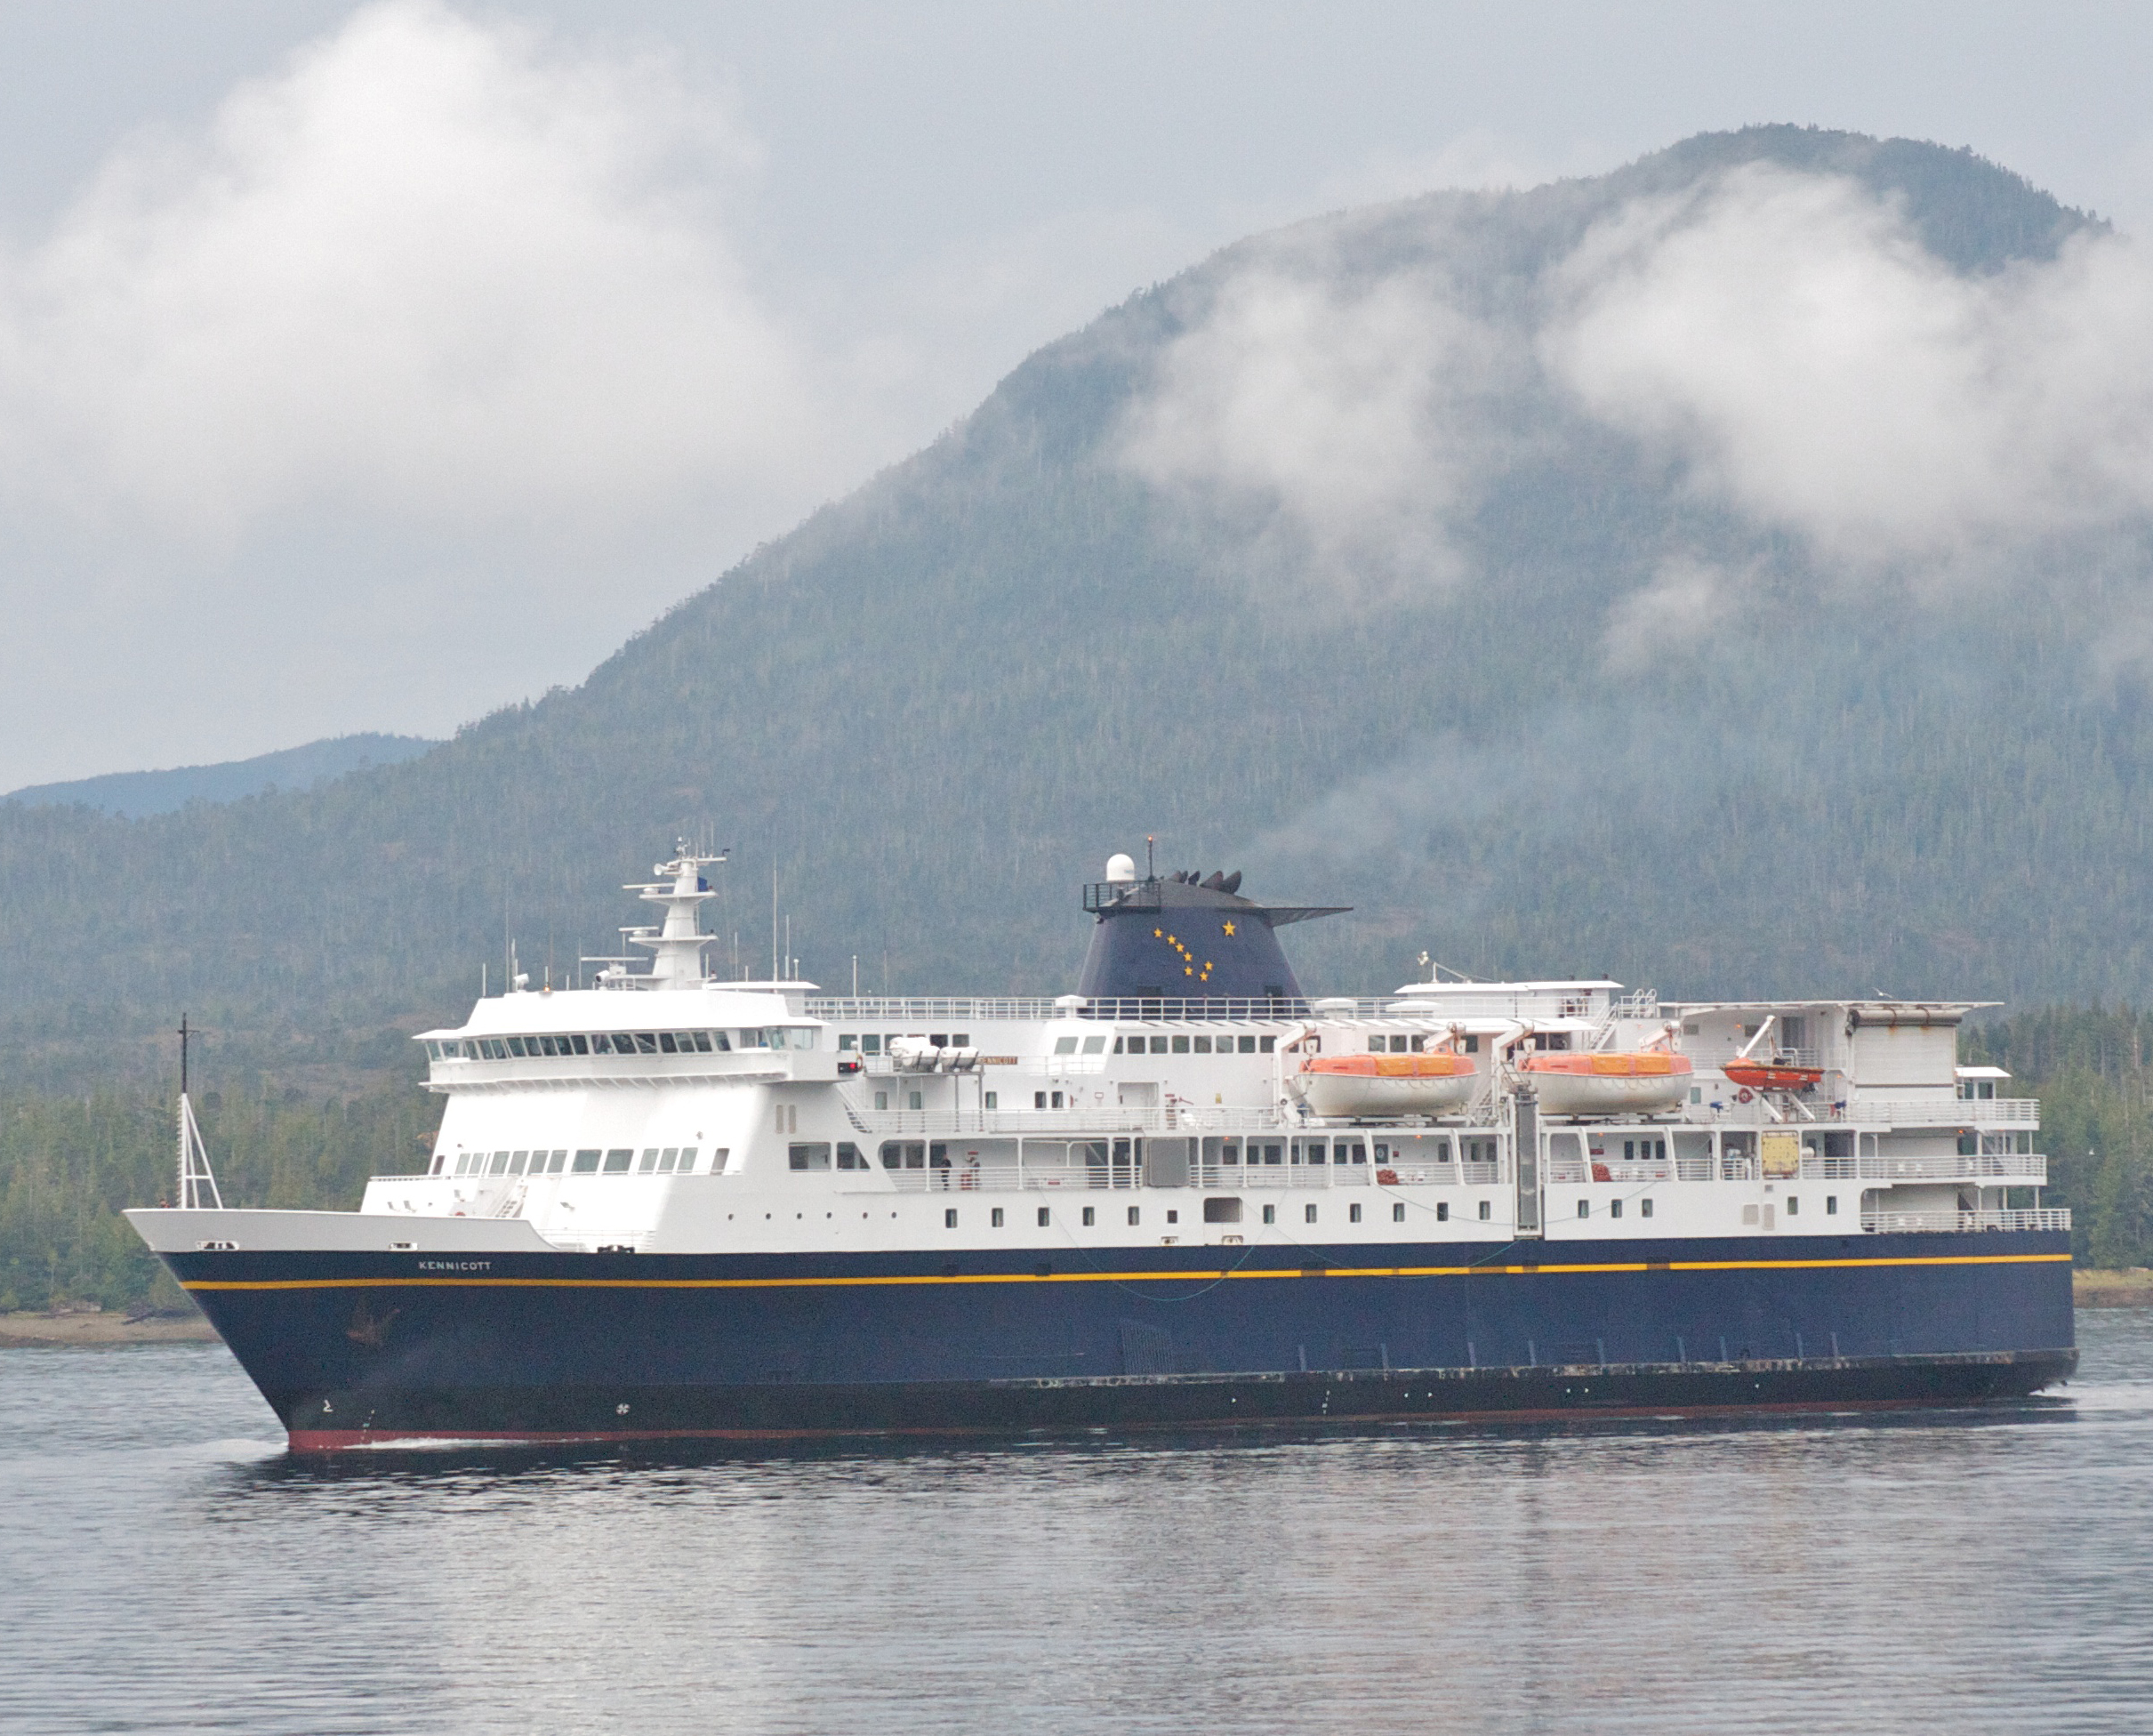 AMHS ferry Kennicott [Alaskan Marine Highway System] Ketchikan strait. (Photo by Jay Galvin/Flickr Creative Commons)